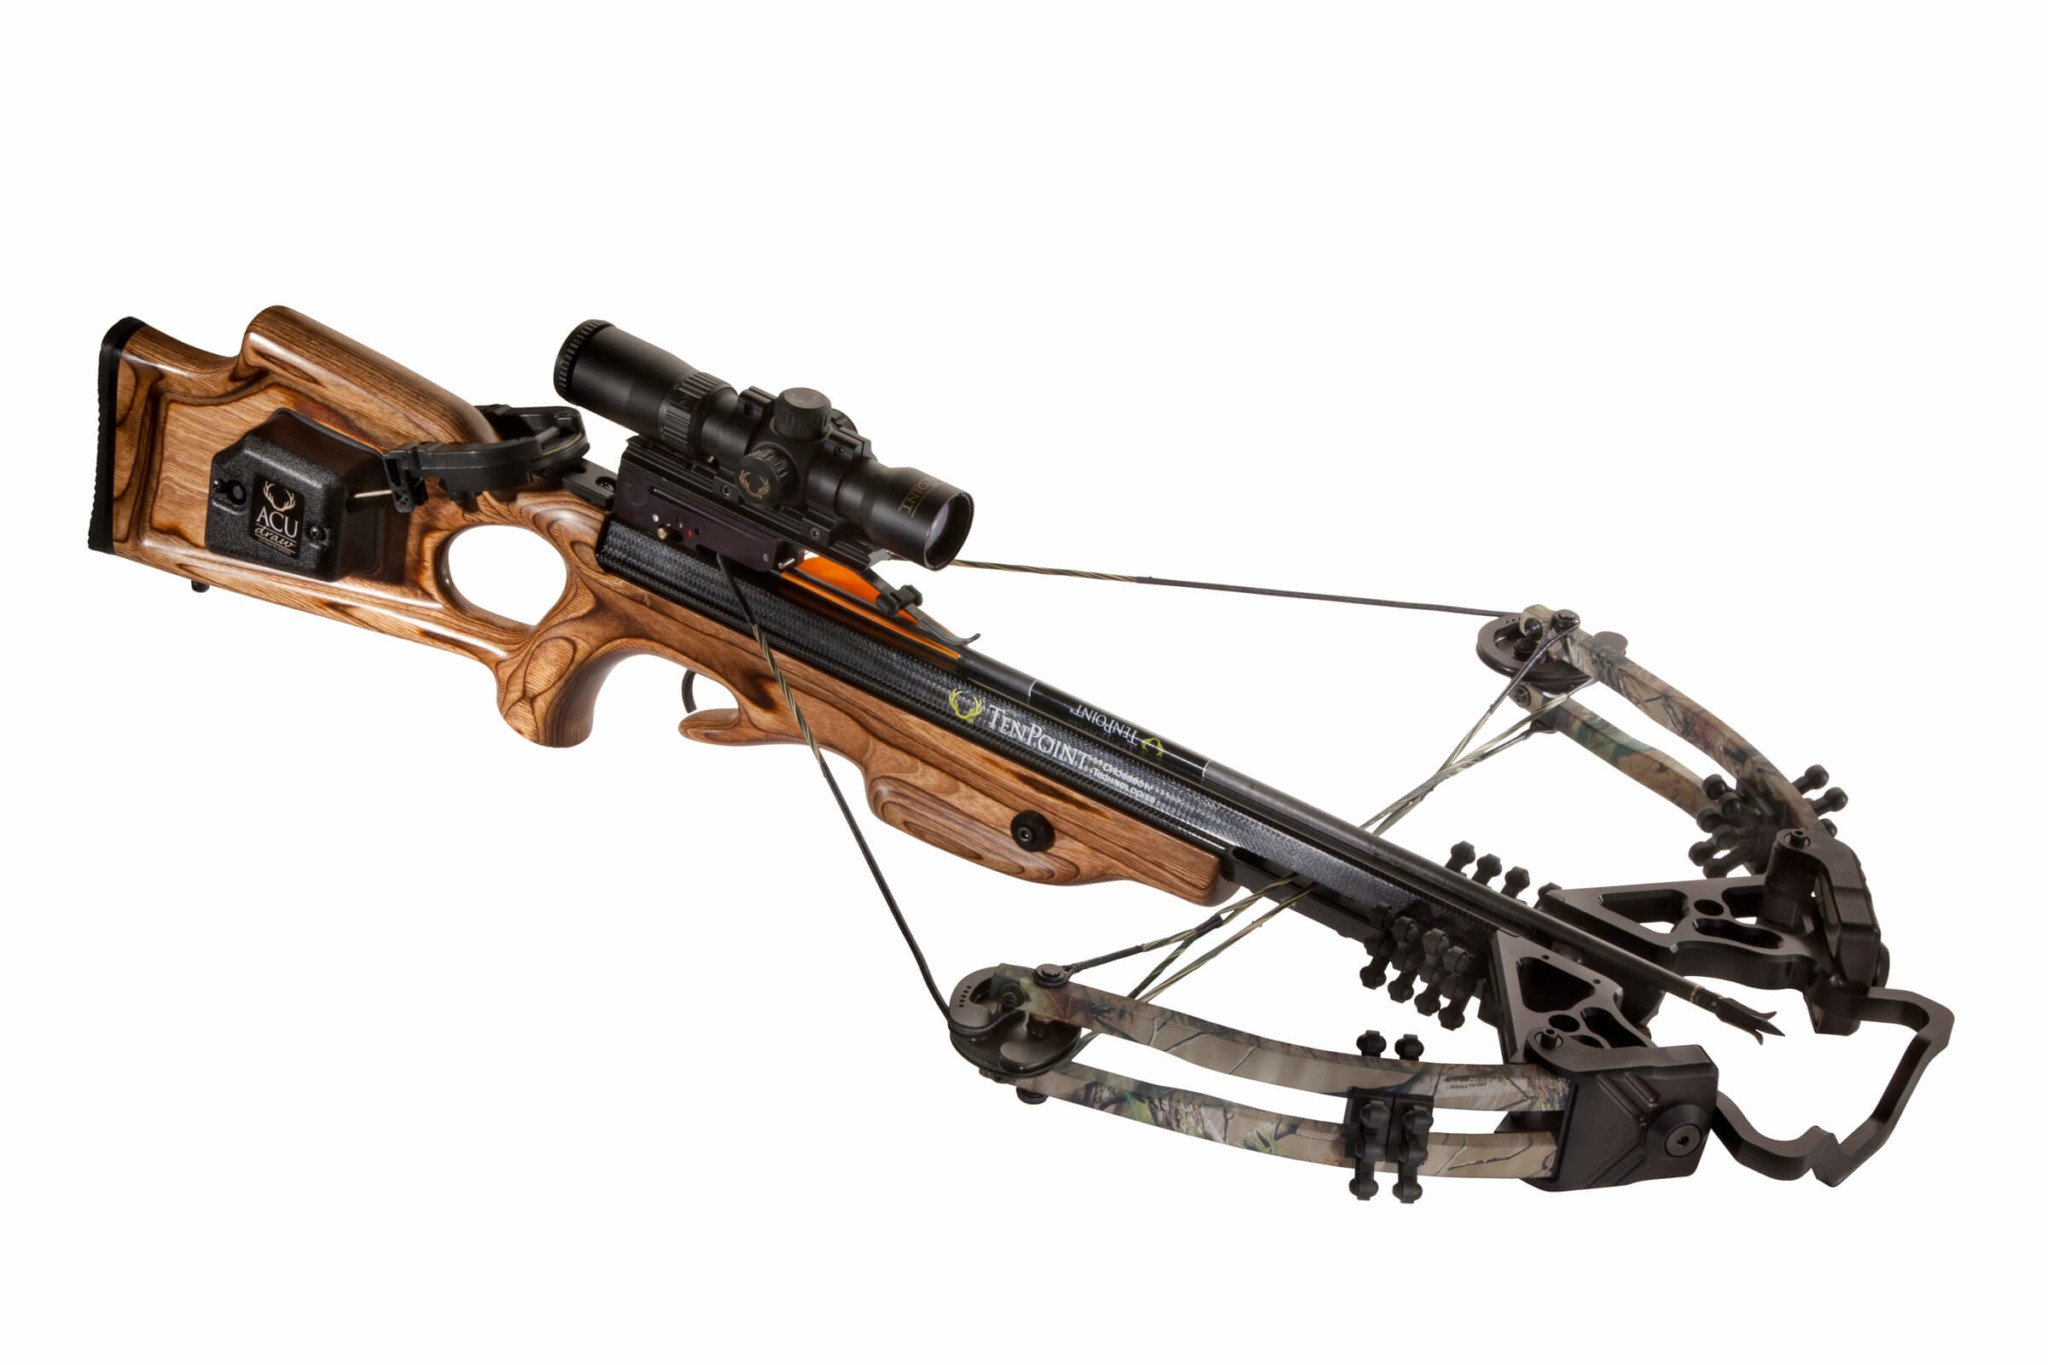 GHOST 385 CROSSBOW FOR DEER HUNTING